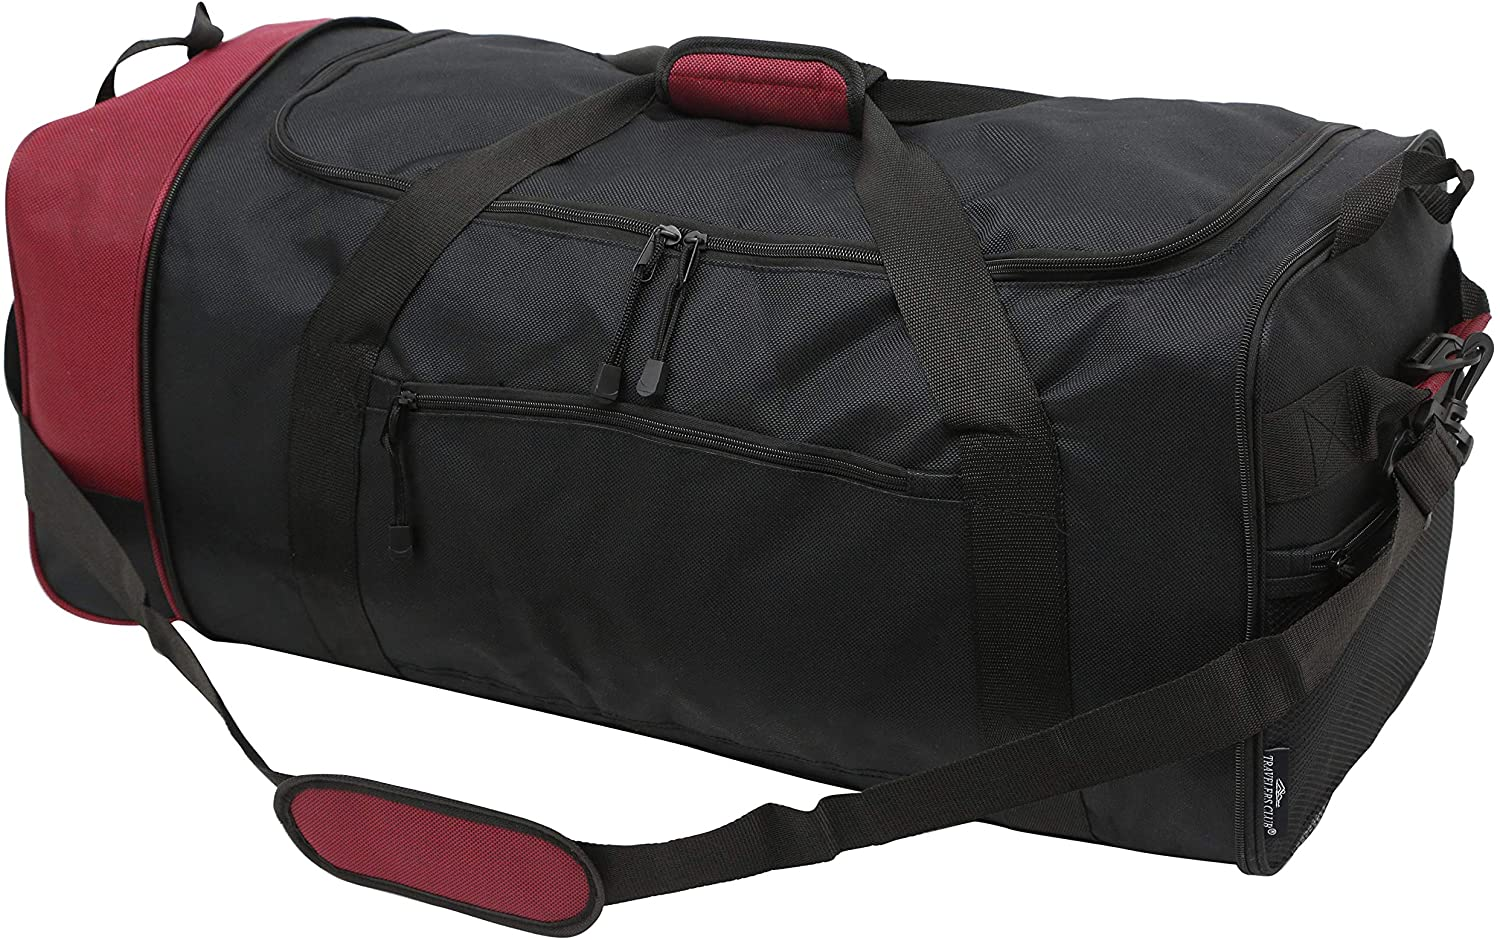 Travelers Club Expandable Rolling Duffle Bag in black and red